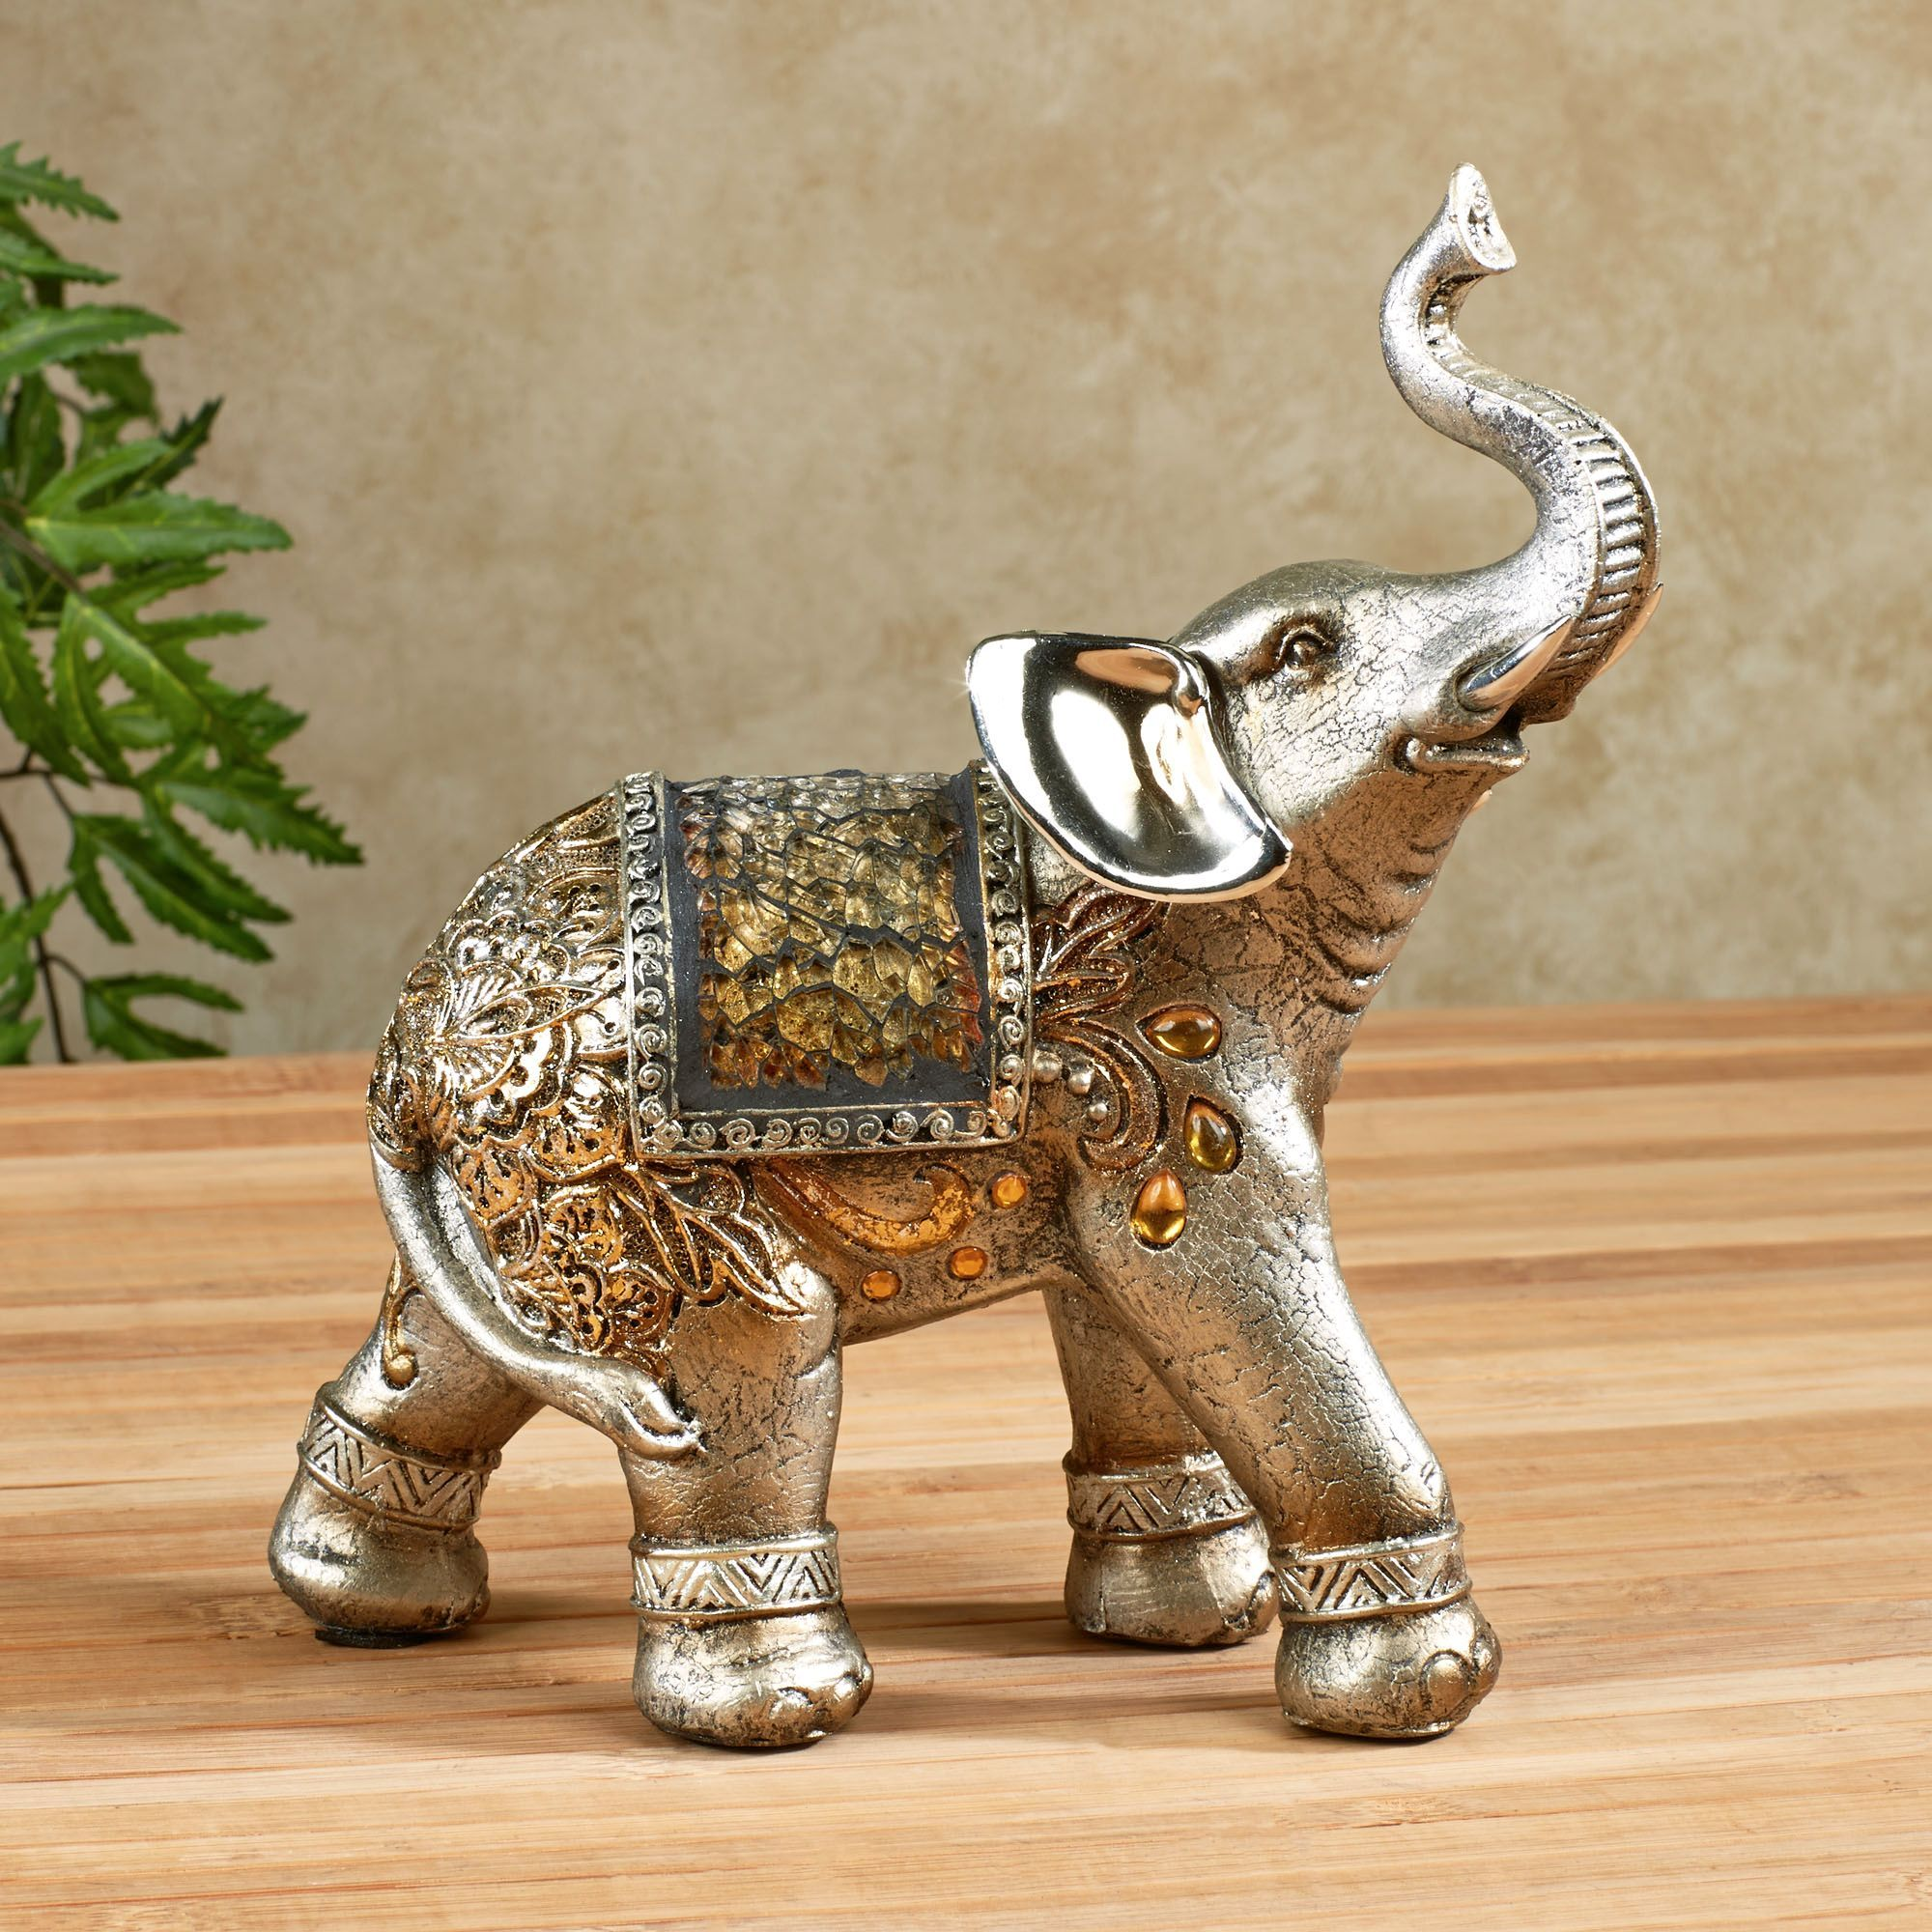 bejeweled mosaic elephant figurines for home decoration